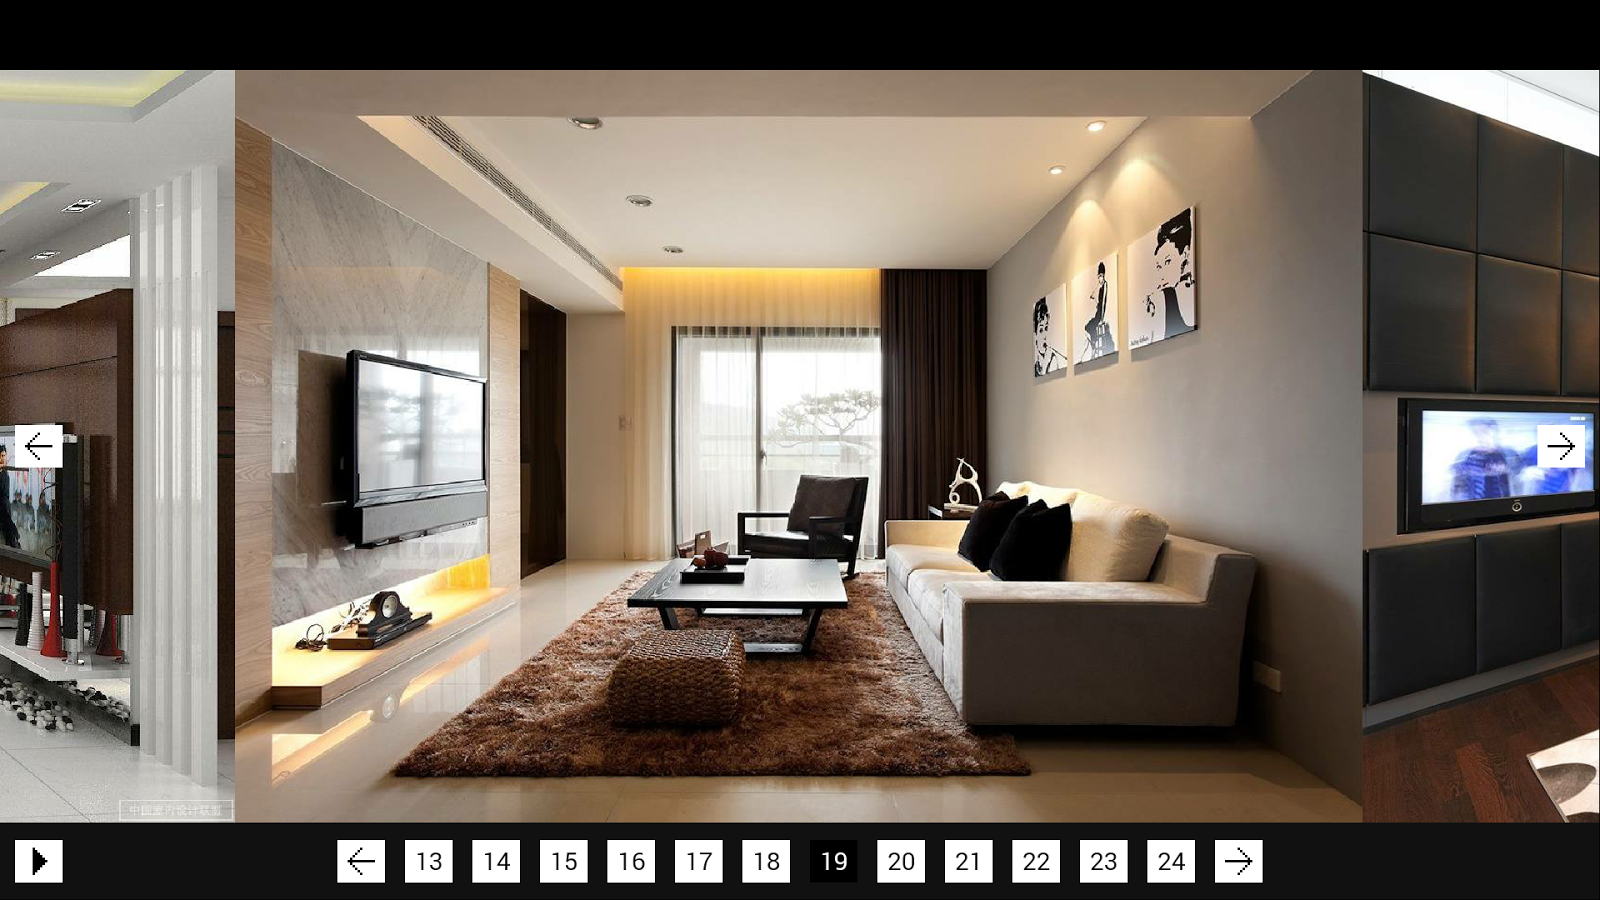 Home interior design android apps on google play for Home interior ideas